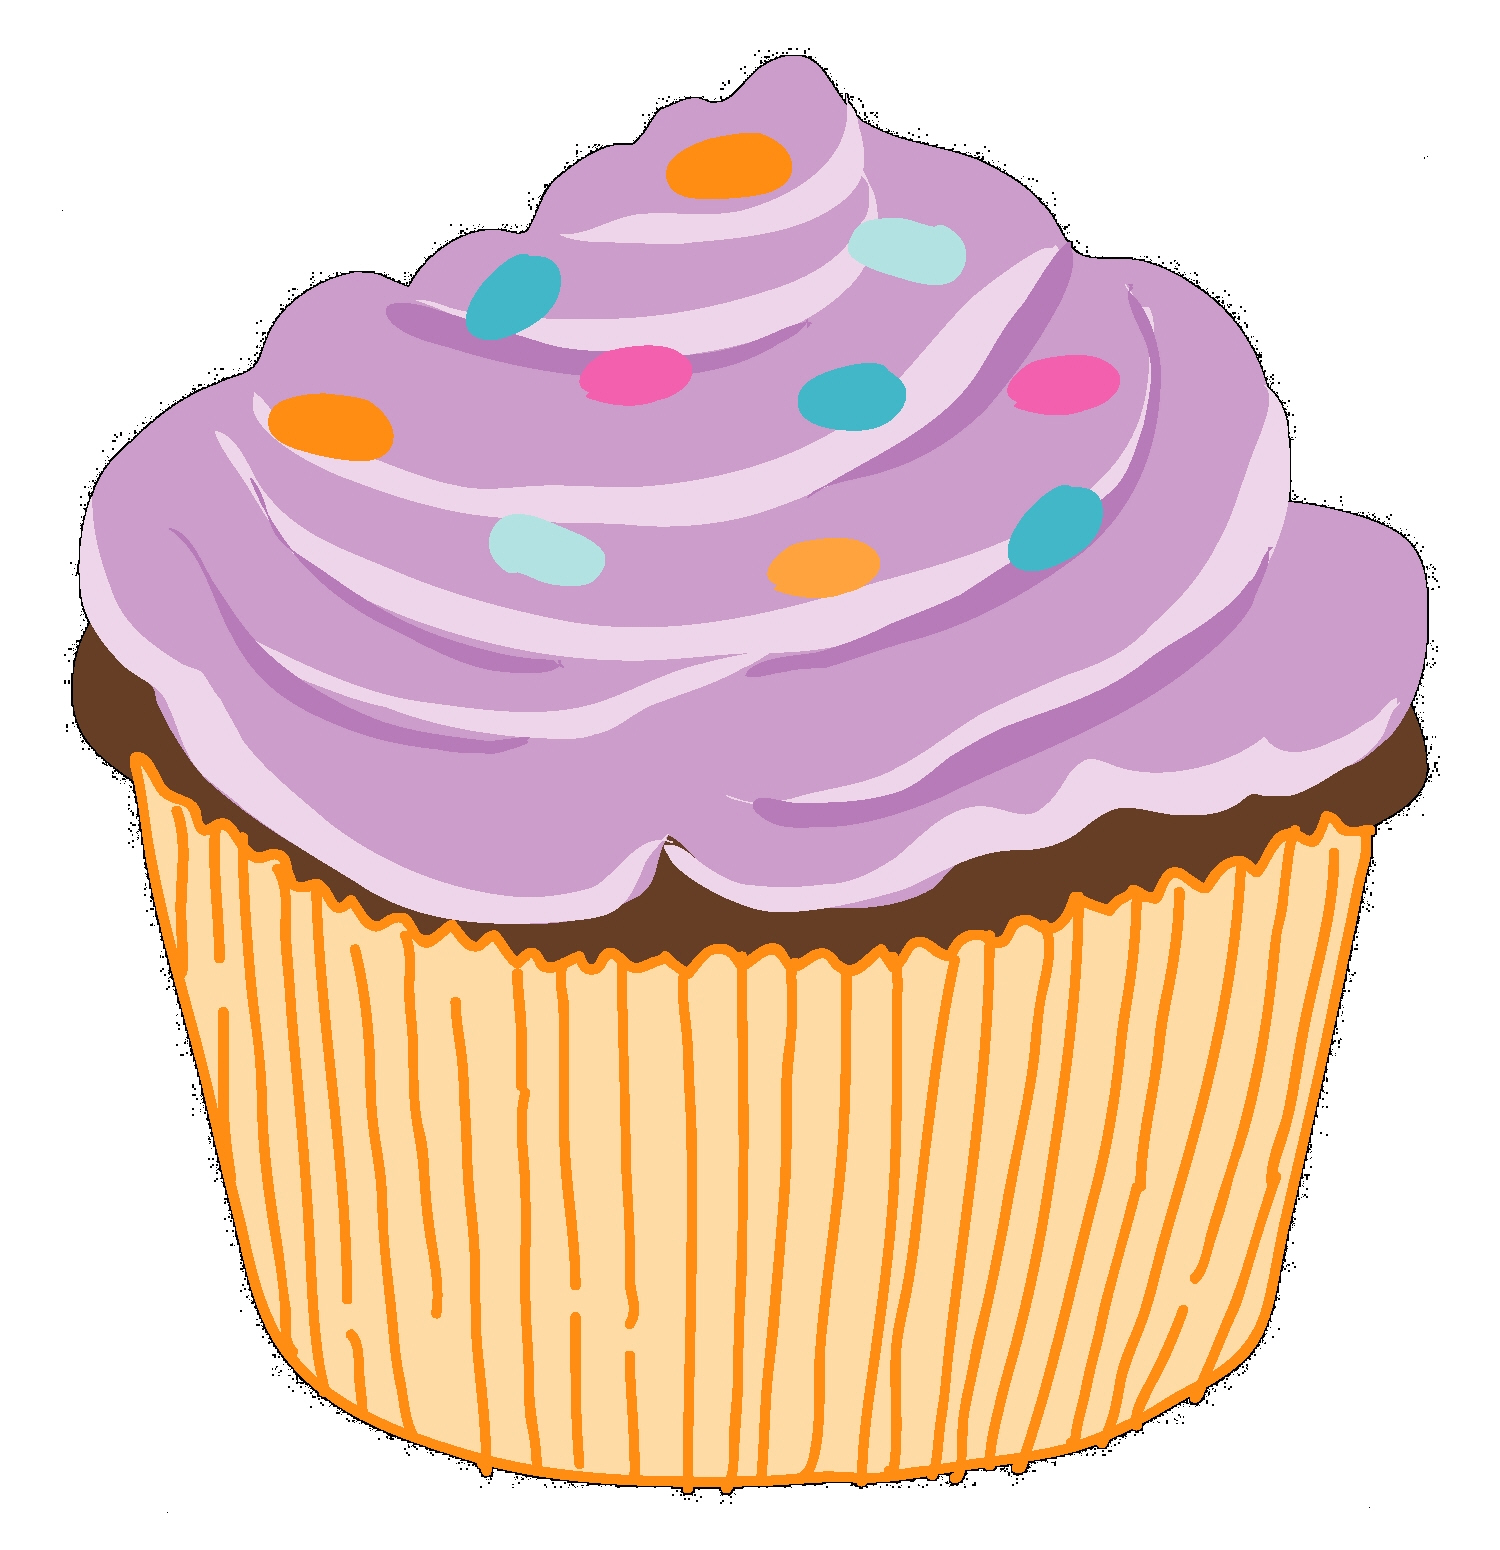 Cupcake clipart free download free clipart images 2.